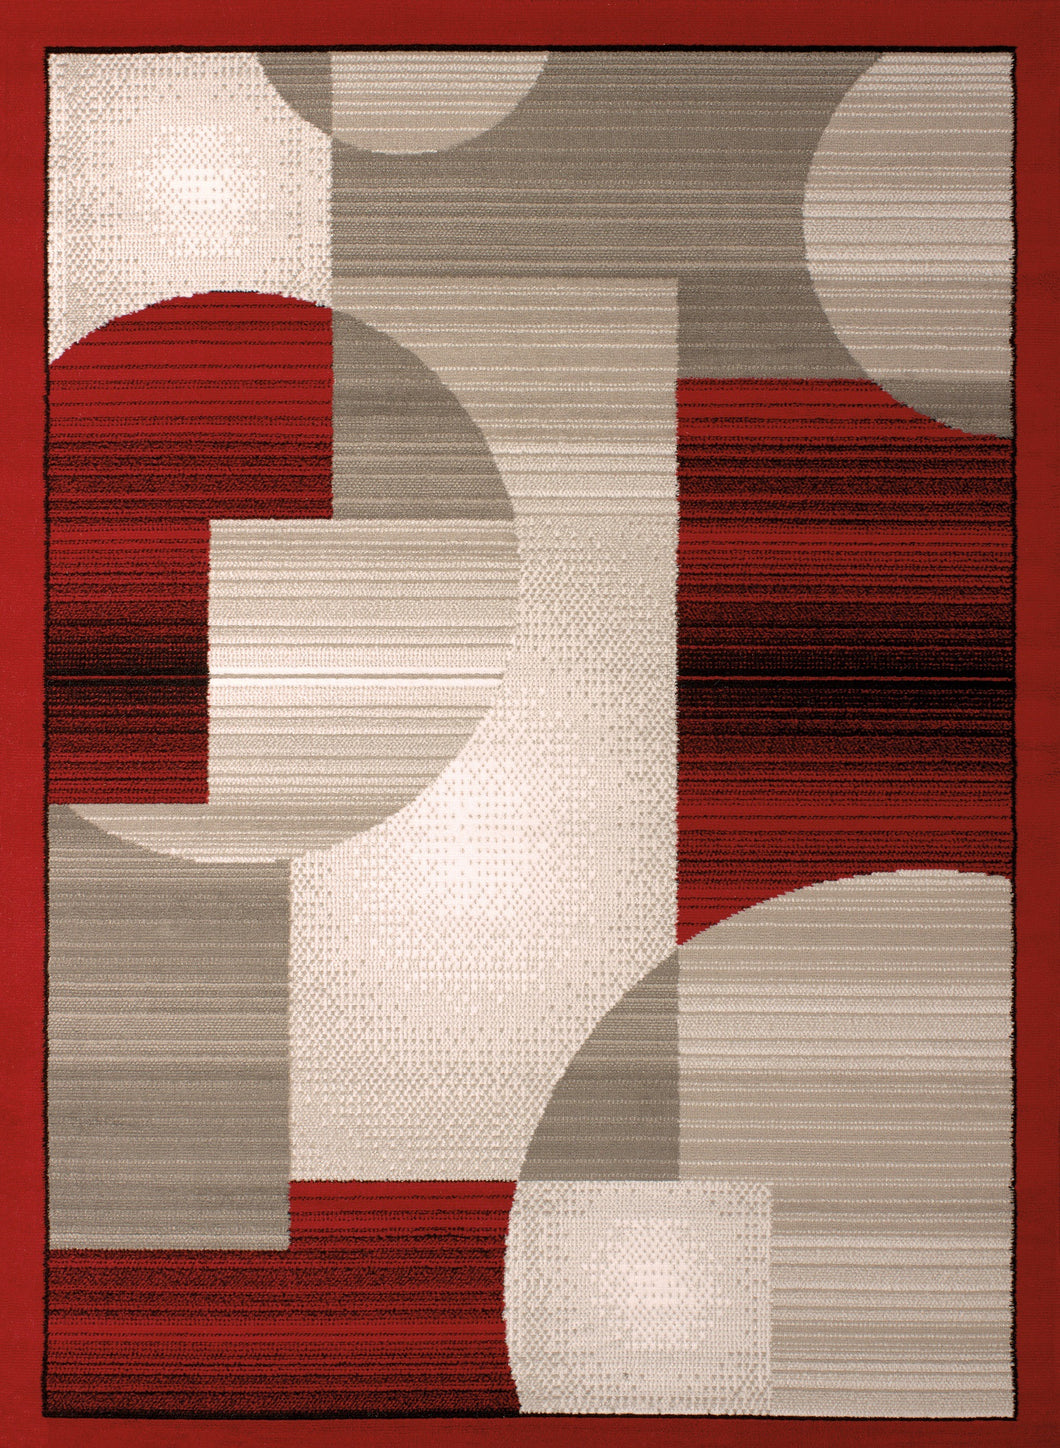 United Weavers  Dallas  Zoom Zoom  851 11130  Red  Area Rug